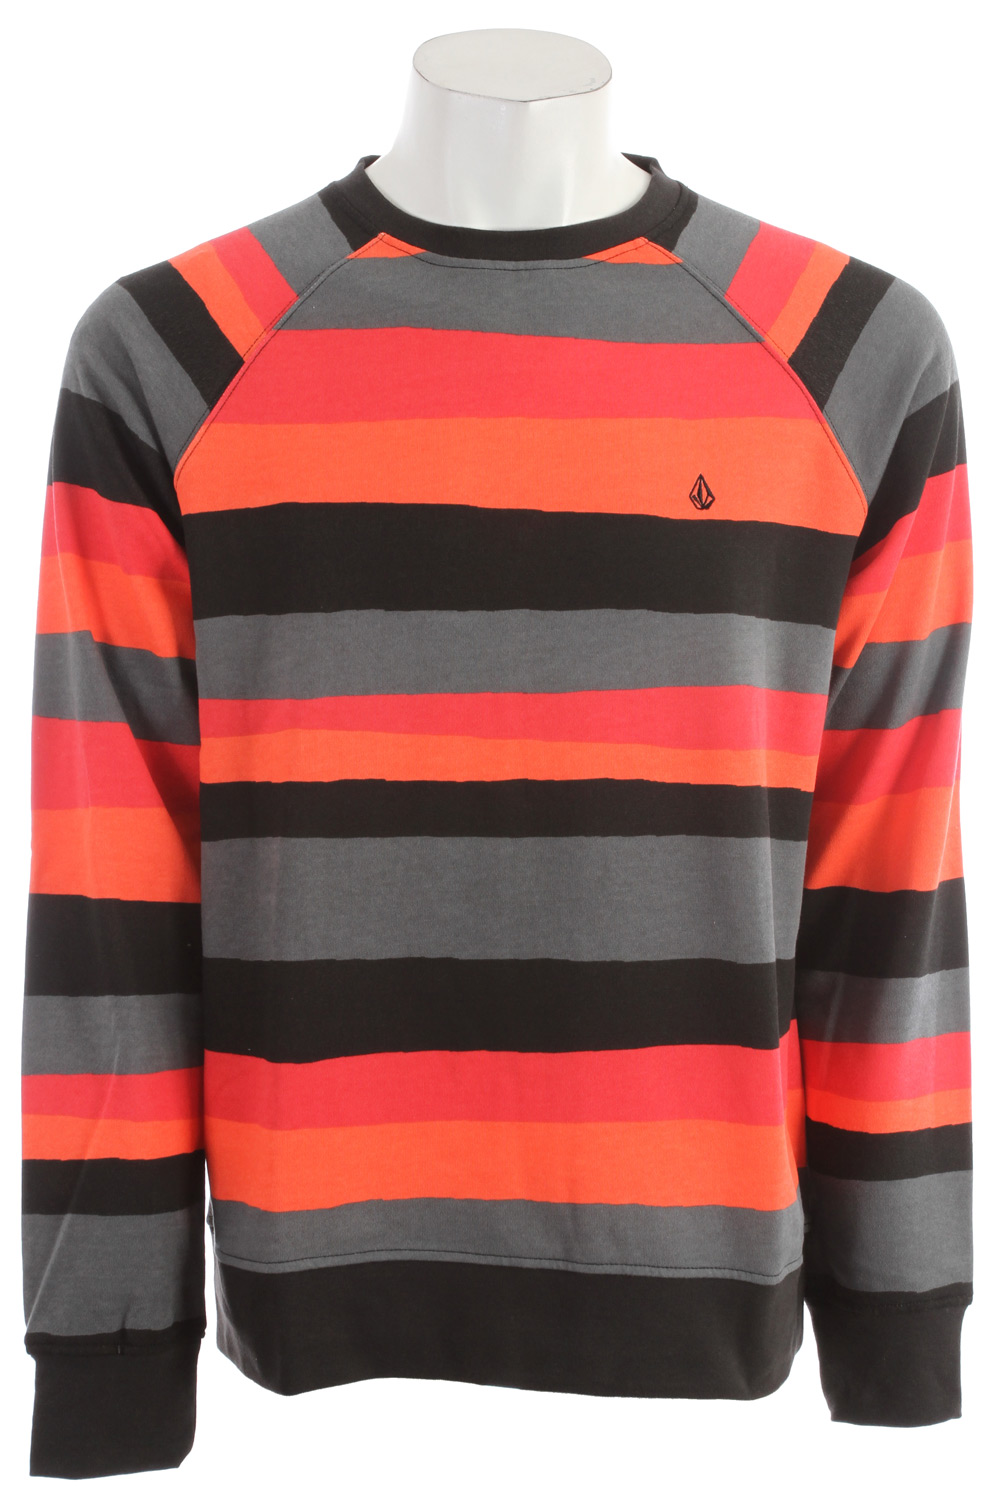 Surf Key Features of the Volcom Hart Crew Sweatshirt: Basic fit crew fleece Printed stripes Raglan sleeves Pre Shrunk Core label package 60% Cotton / 40% Poly Fleece, 280g - $32.95